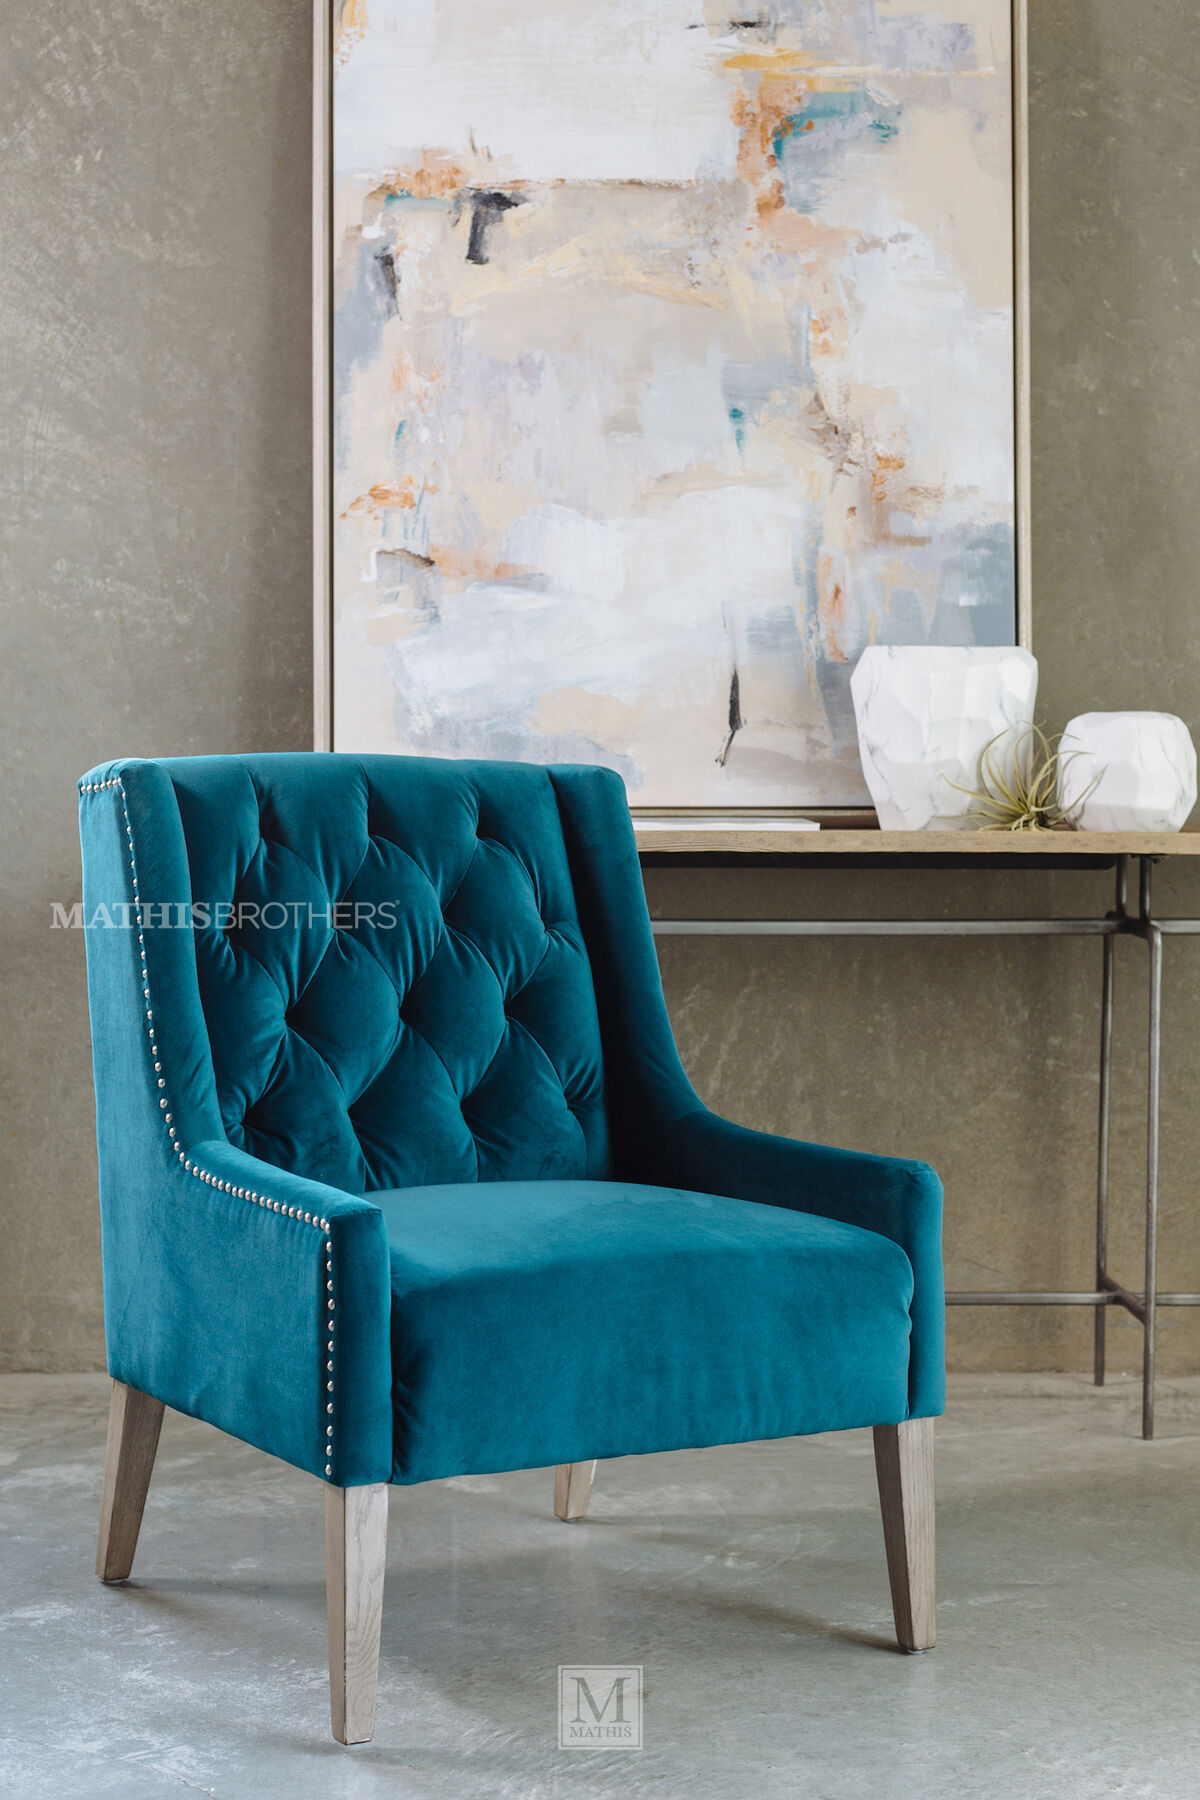 Tufted Casual Velvet Accent Chair in Blue  Mathis